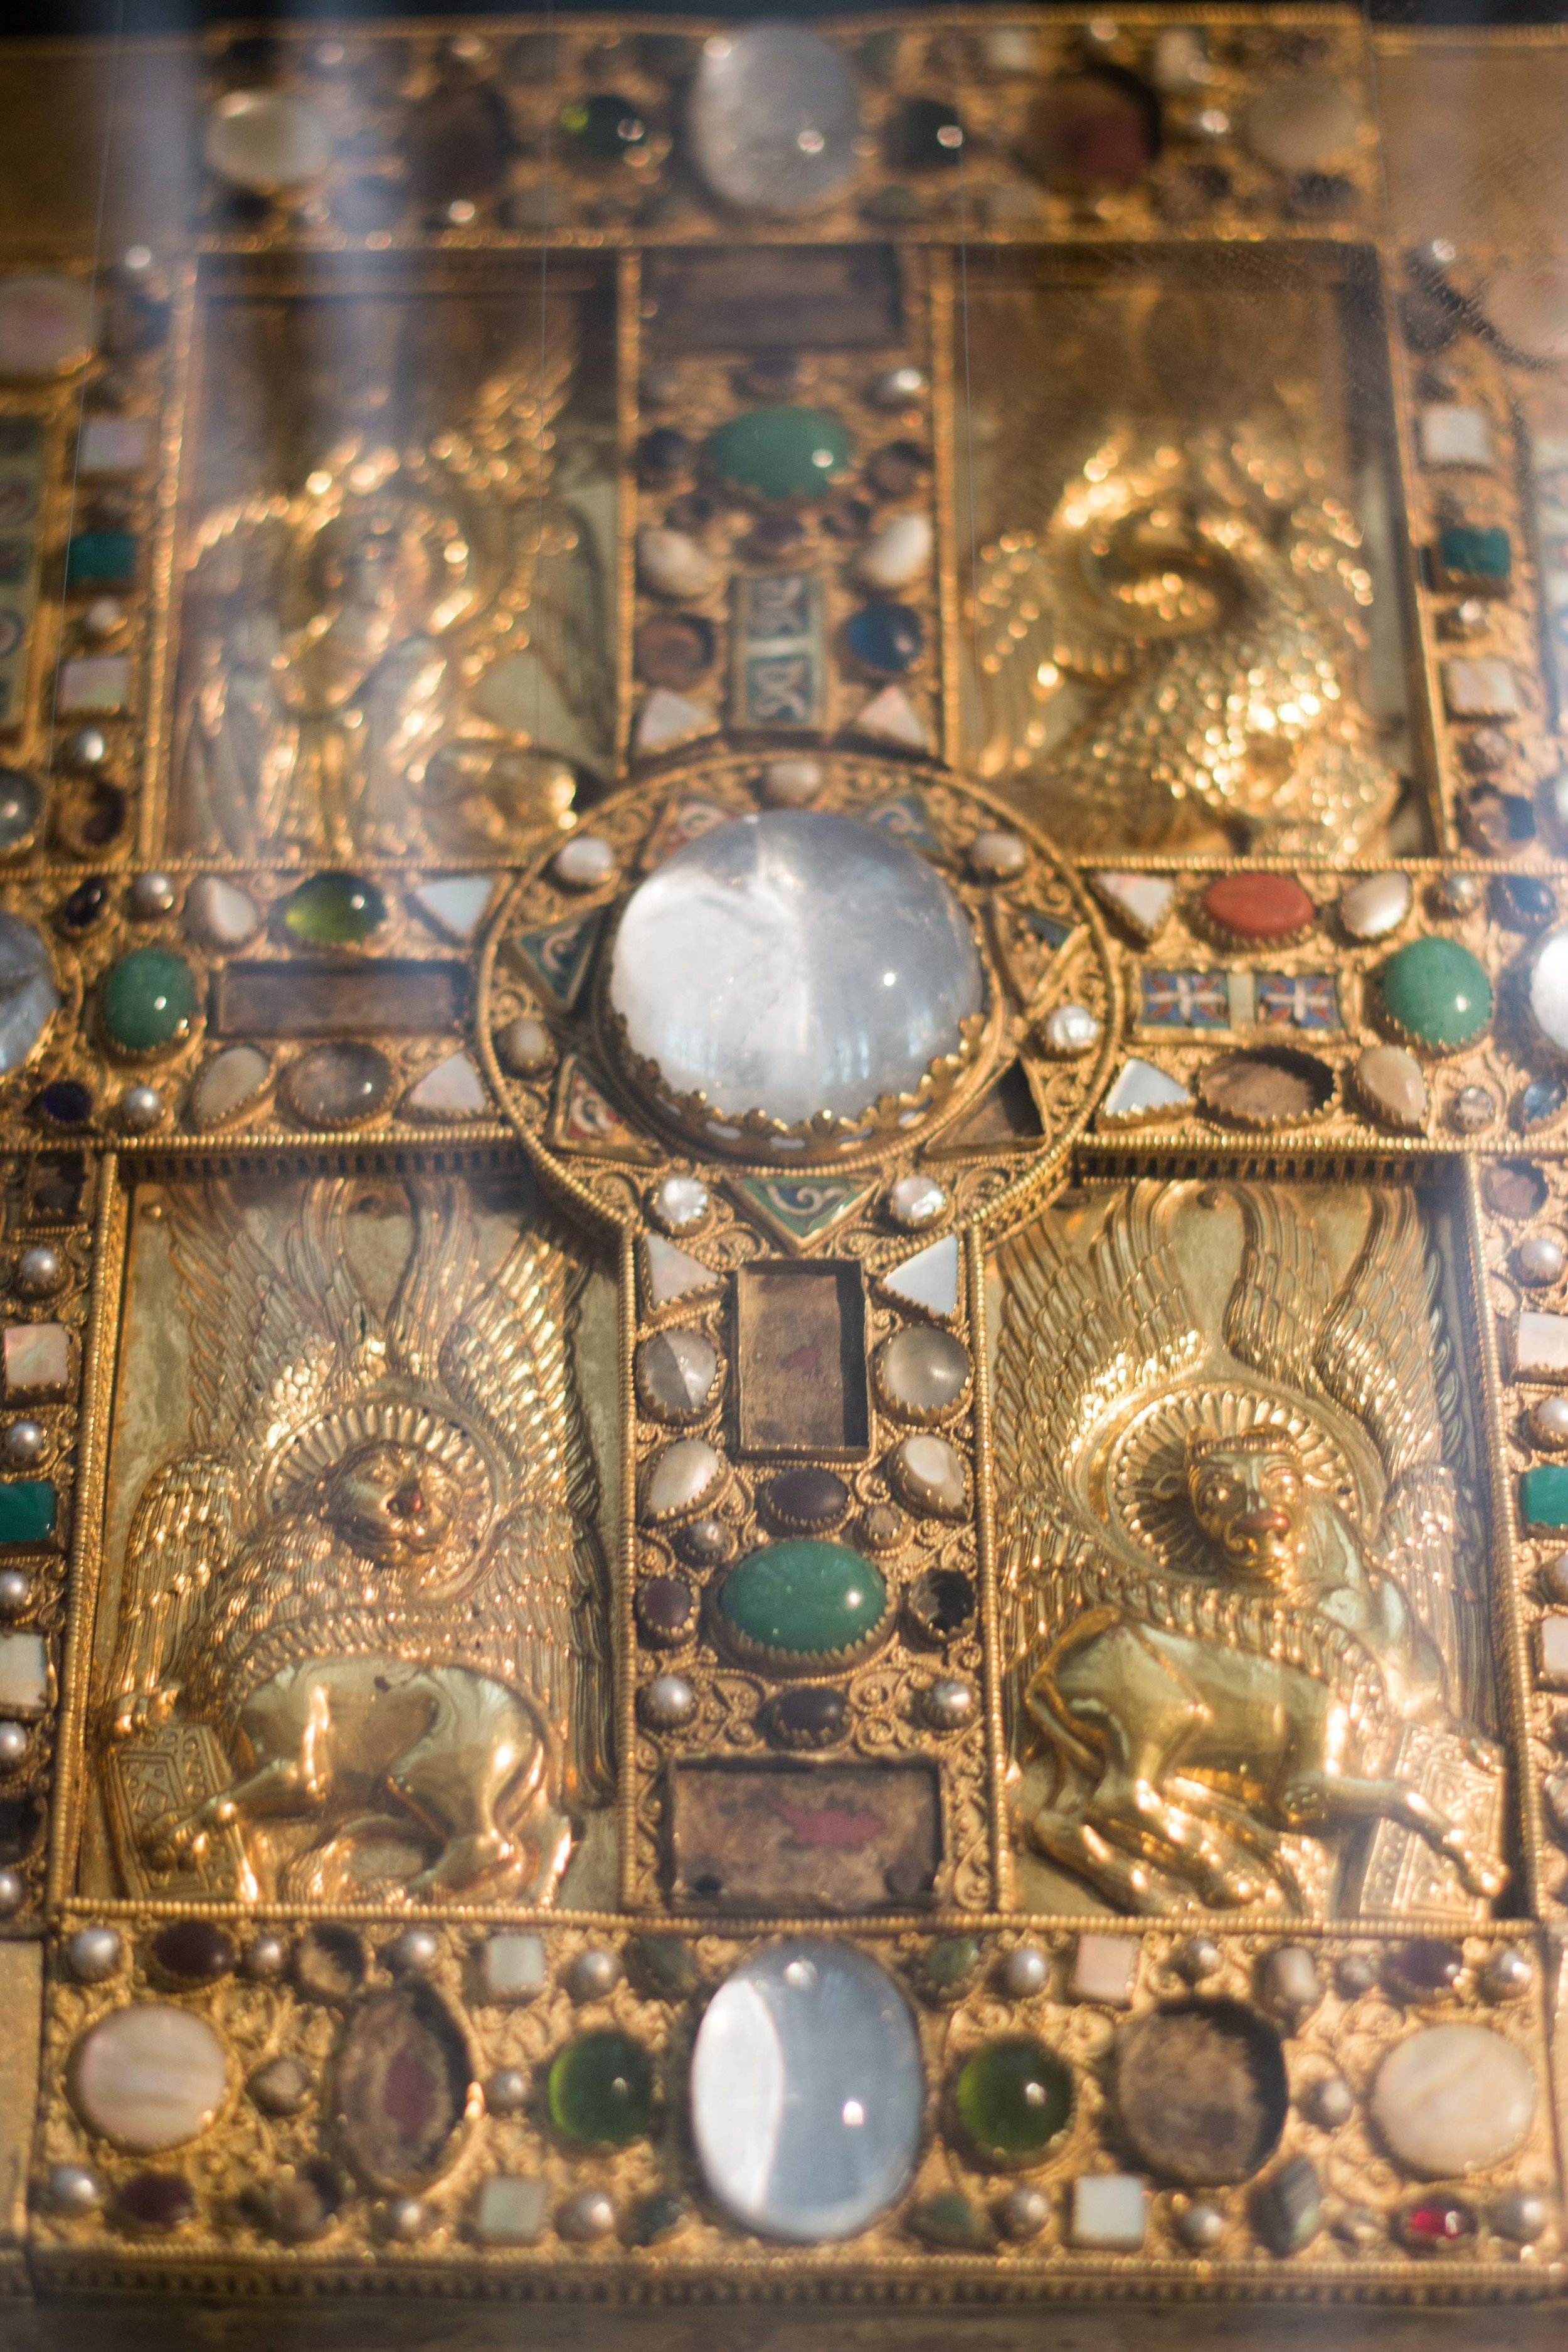 One of the incredibly ornate bibles on display in the Schatzkammer